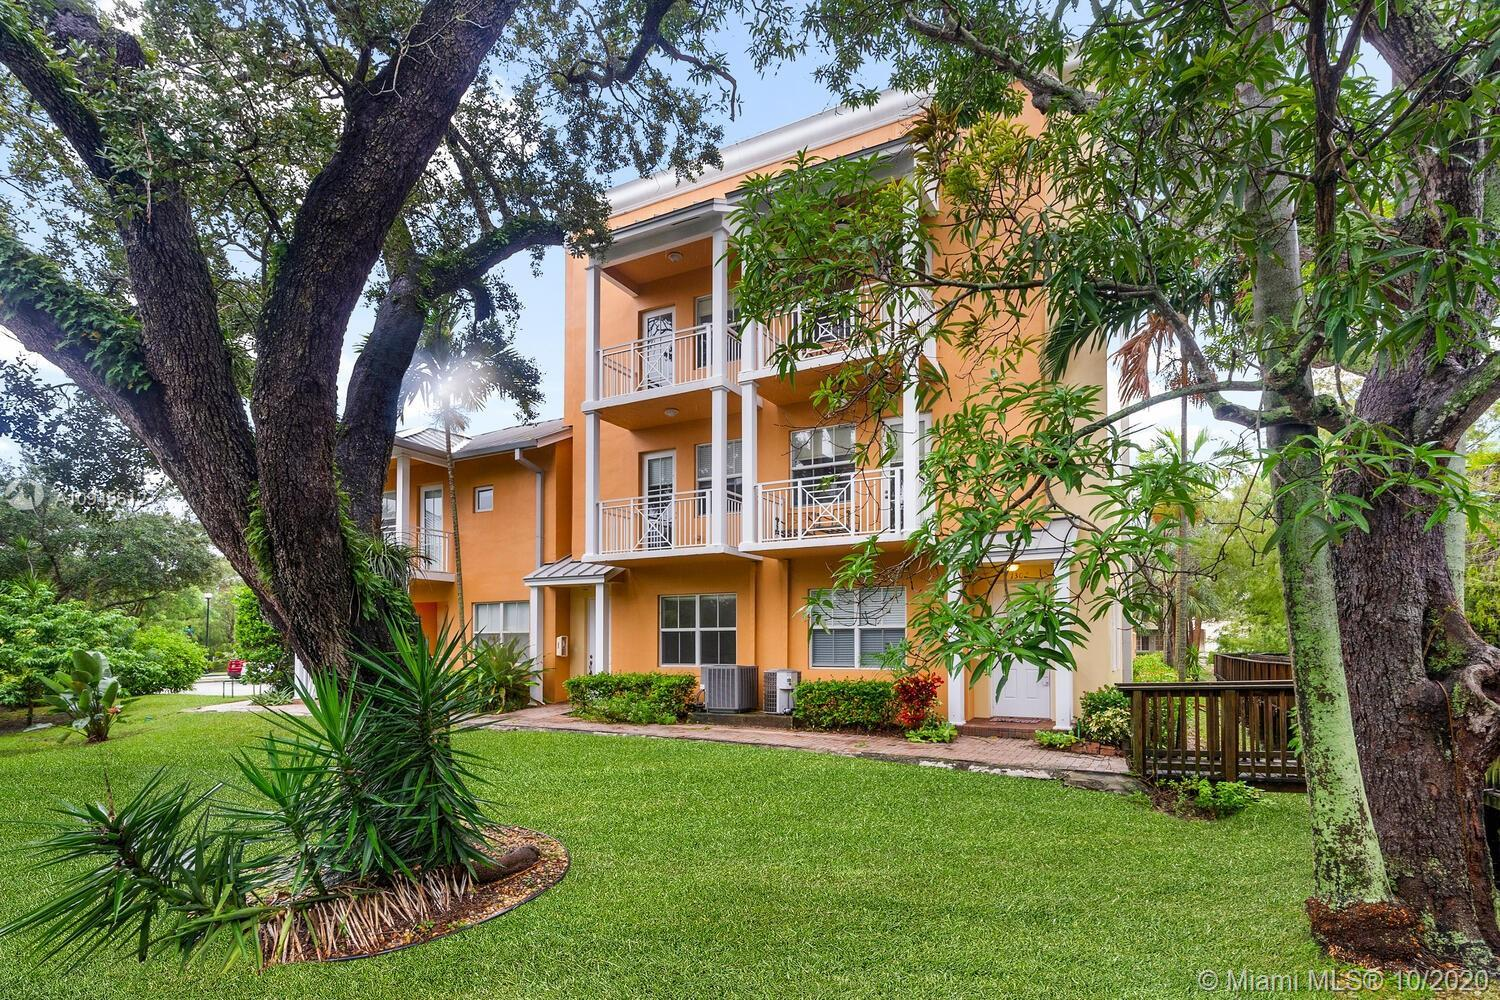 Tri-level townhouse with 2 car garage located in the heart of the Arts & Entertainment area in downt